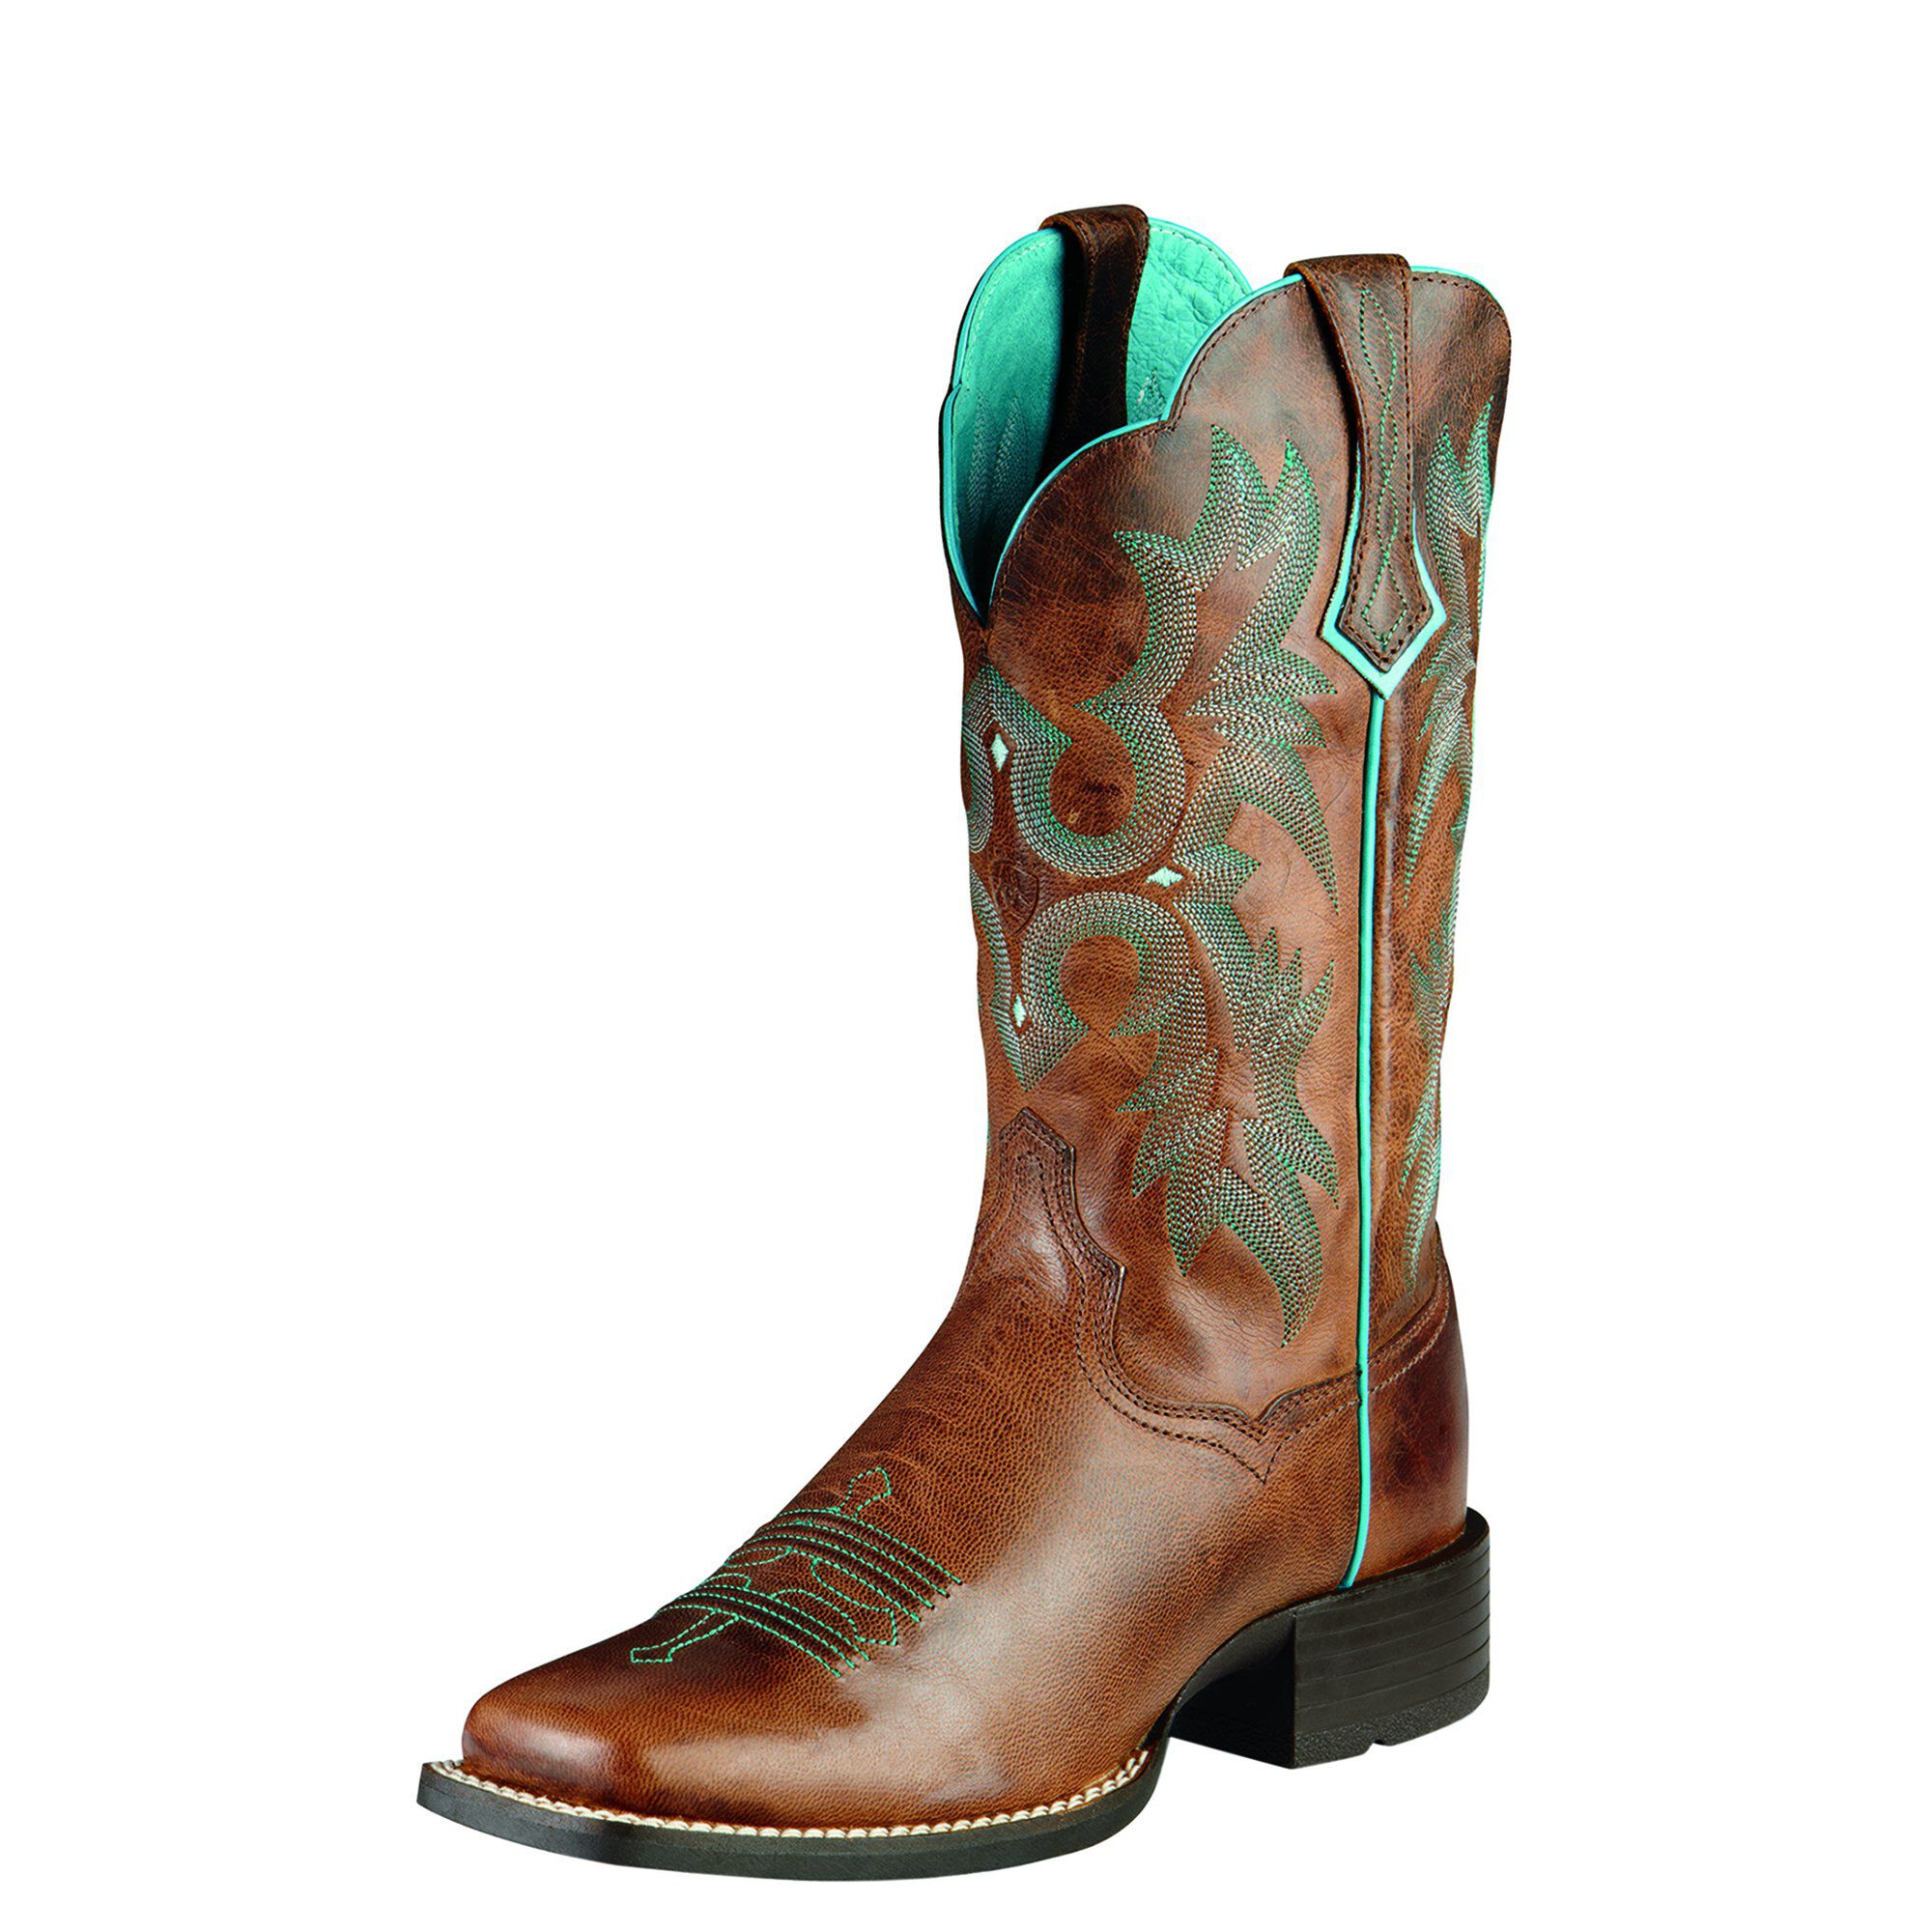 Ariat Tombstone Western Boots in Sassy Brown Leather